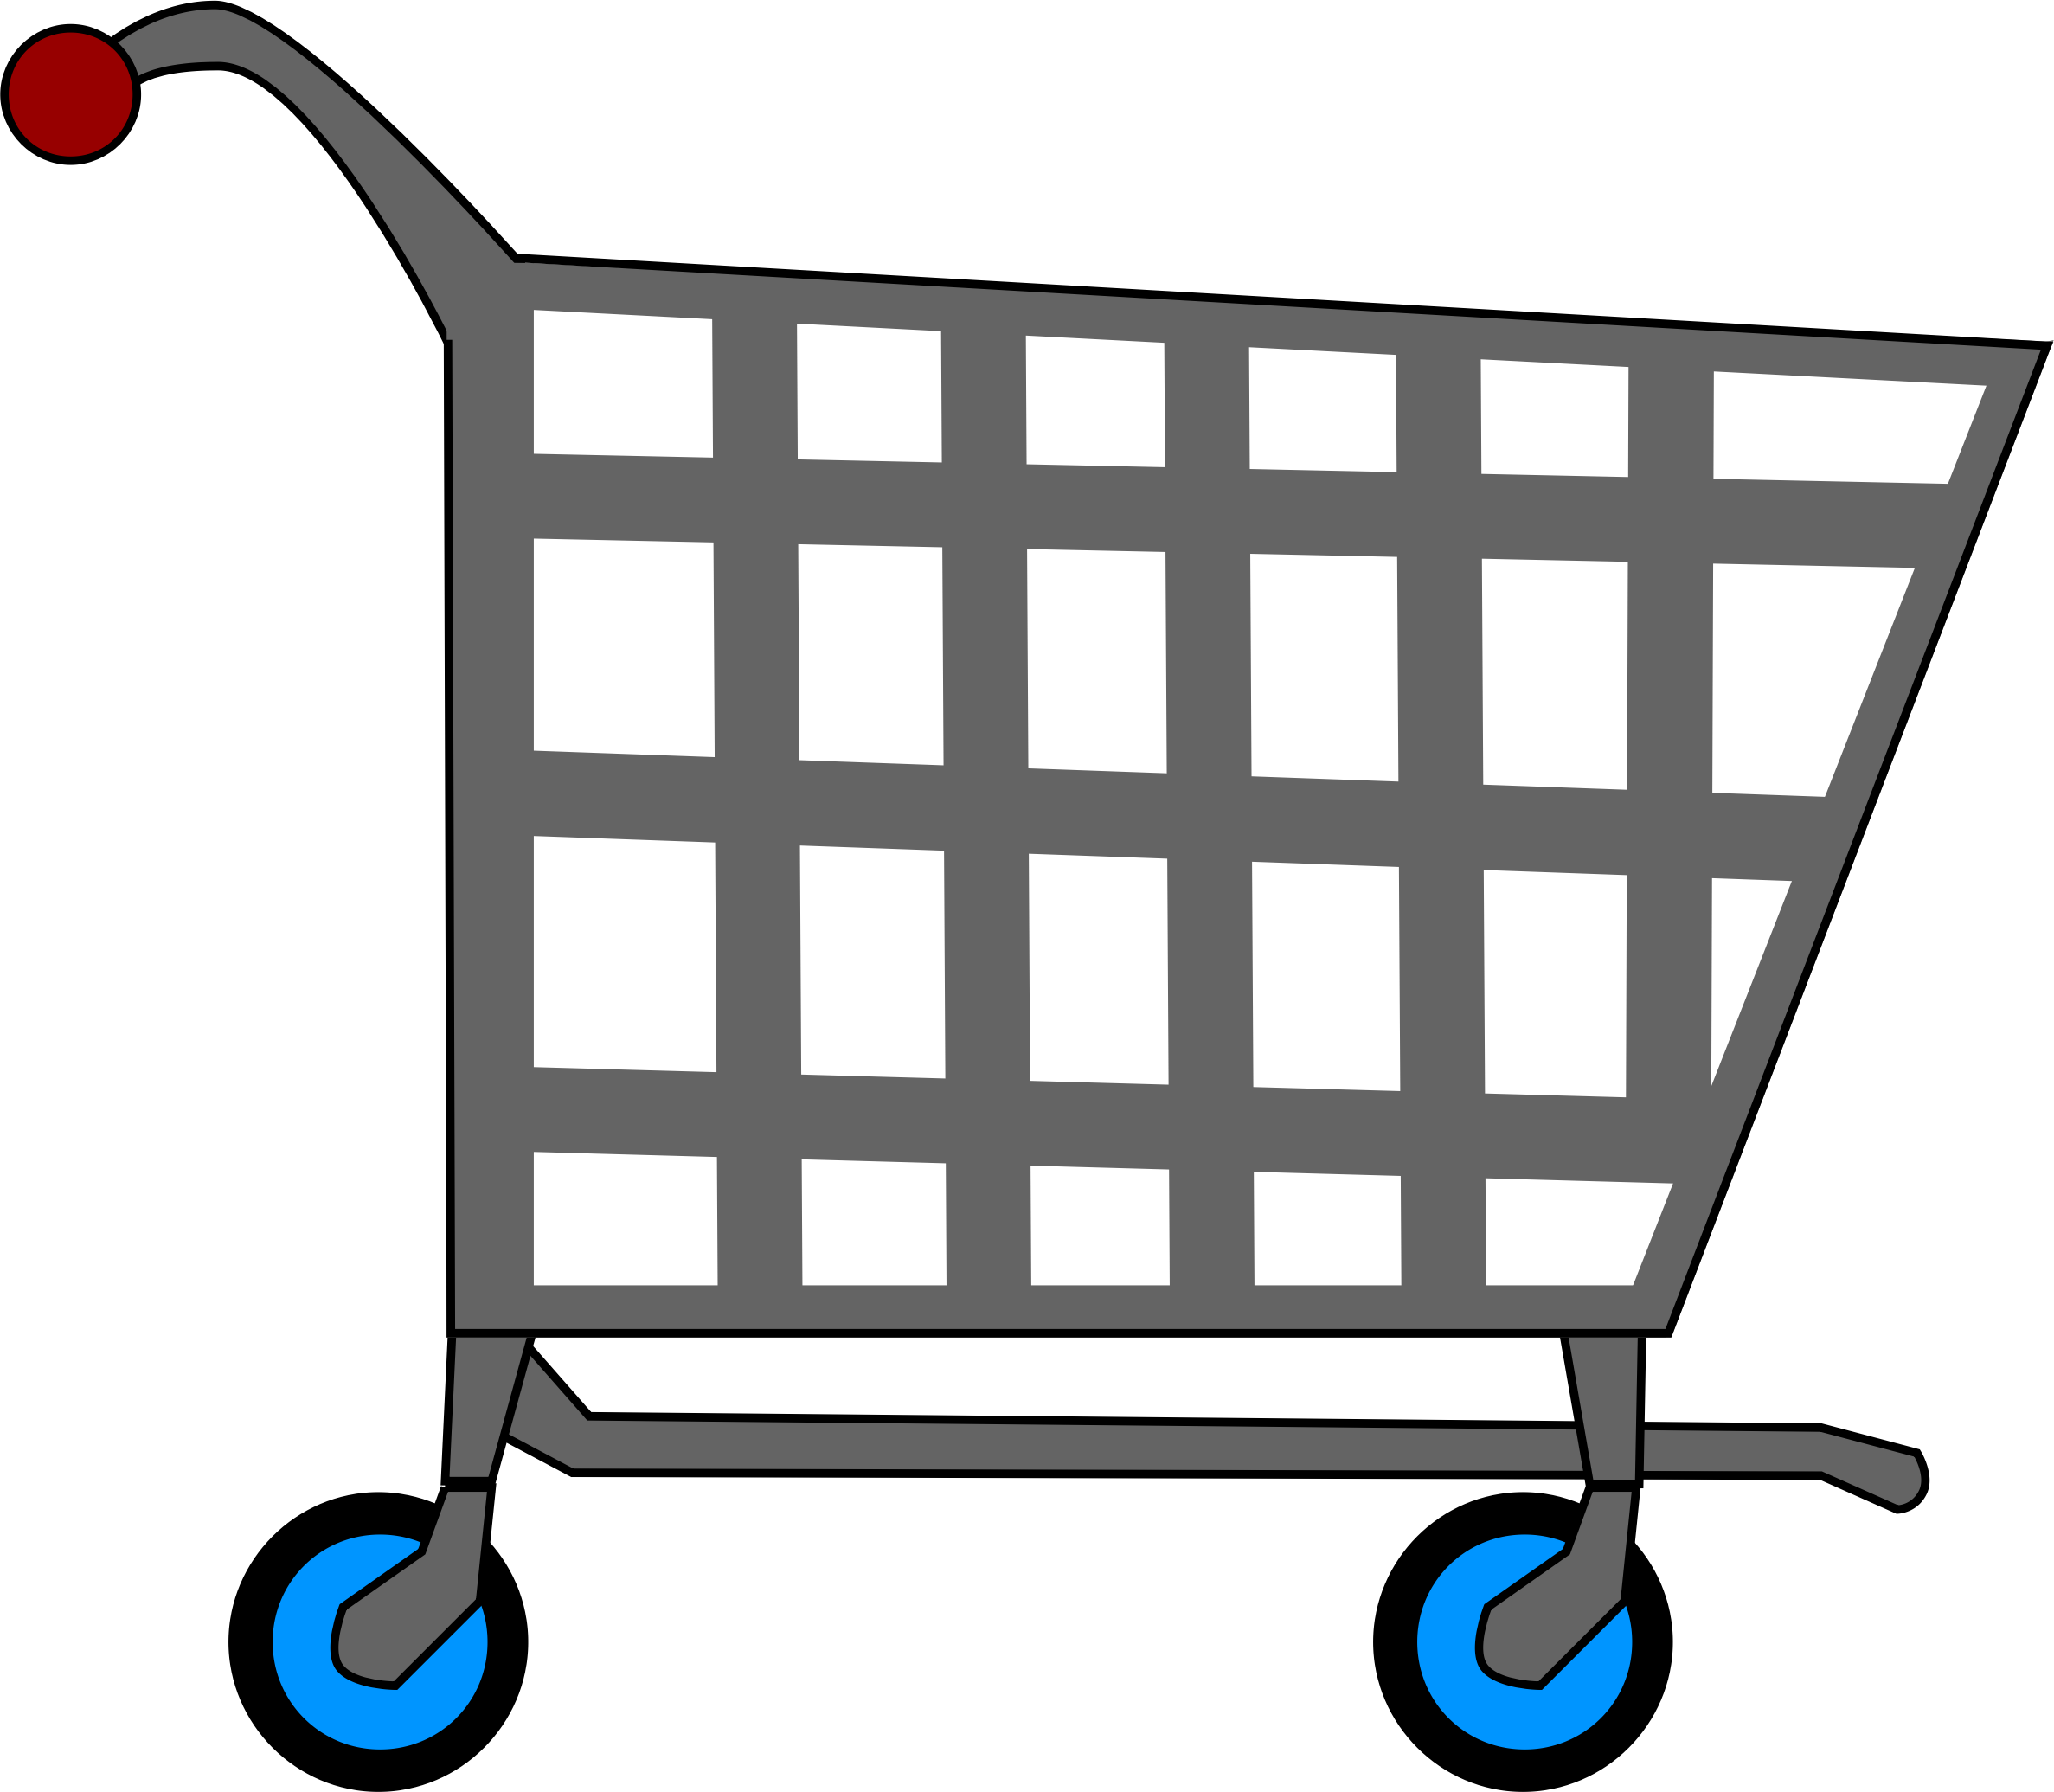 royalty free library Shopping cart png images. Supermarket clipart background